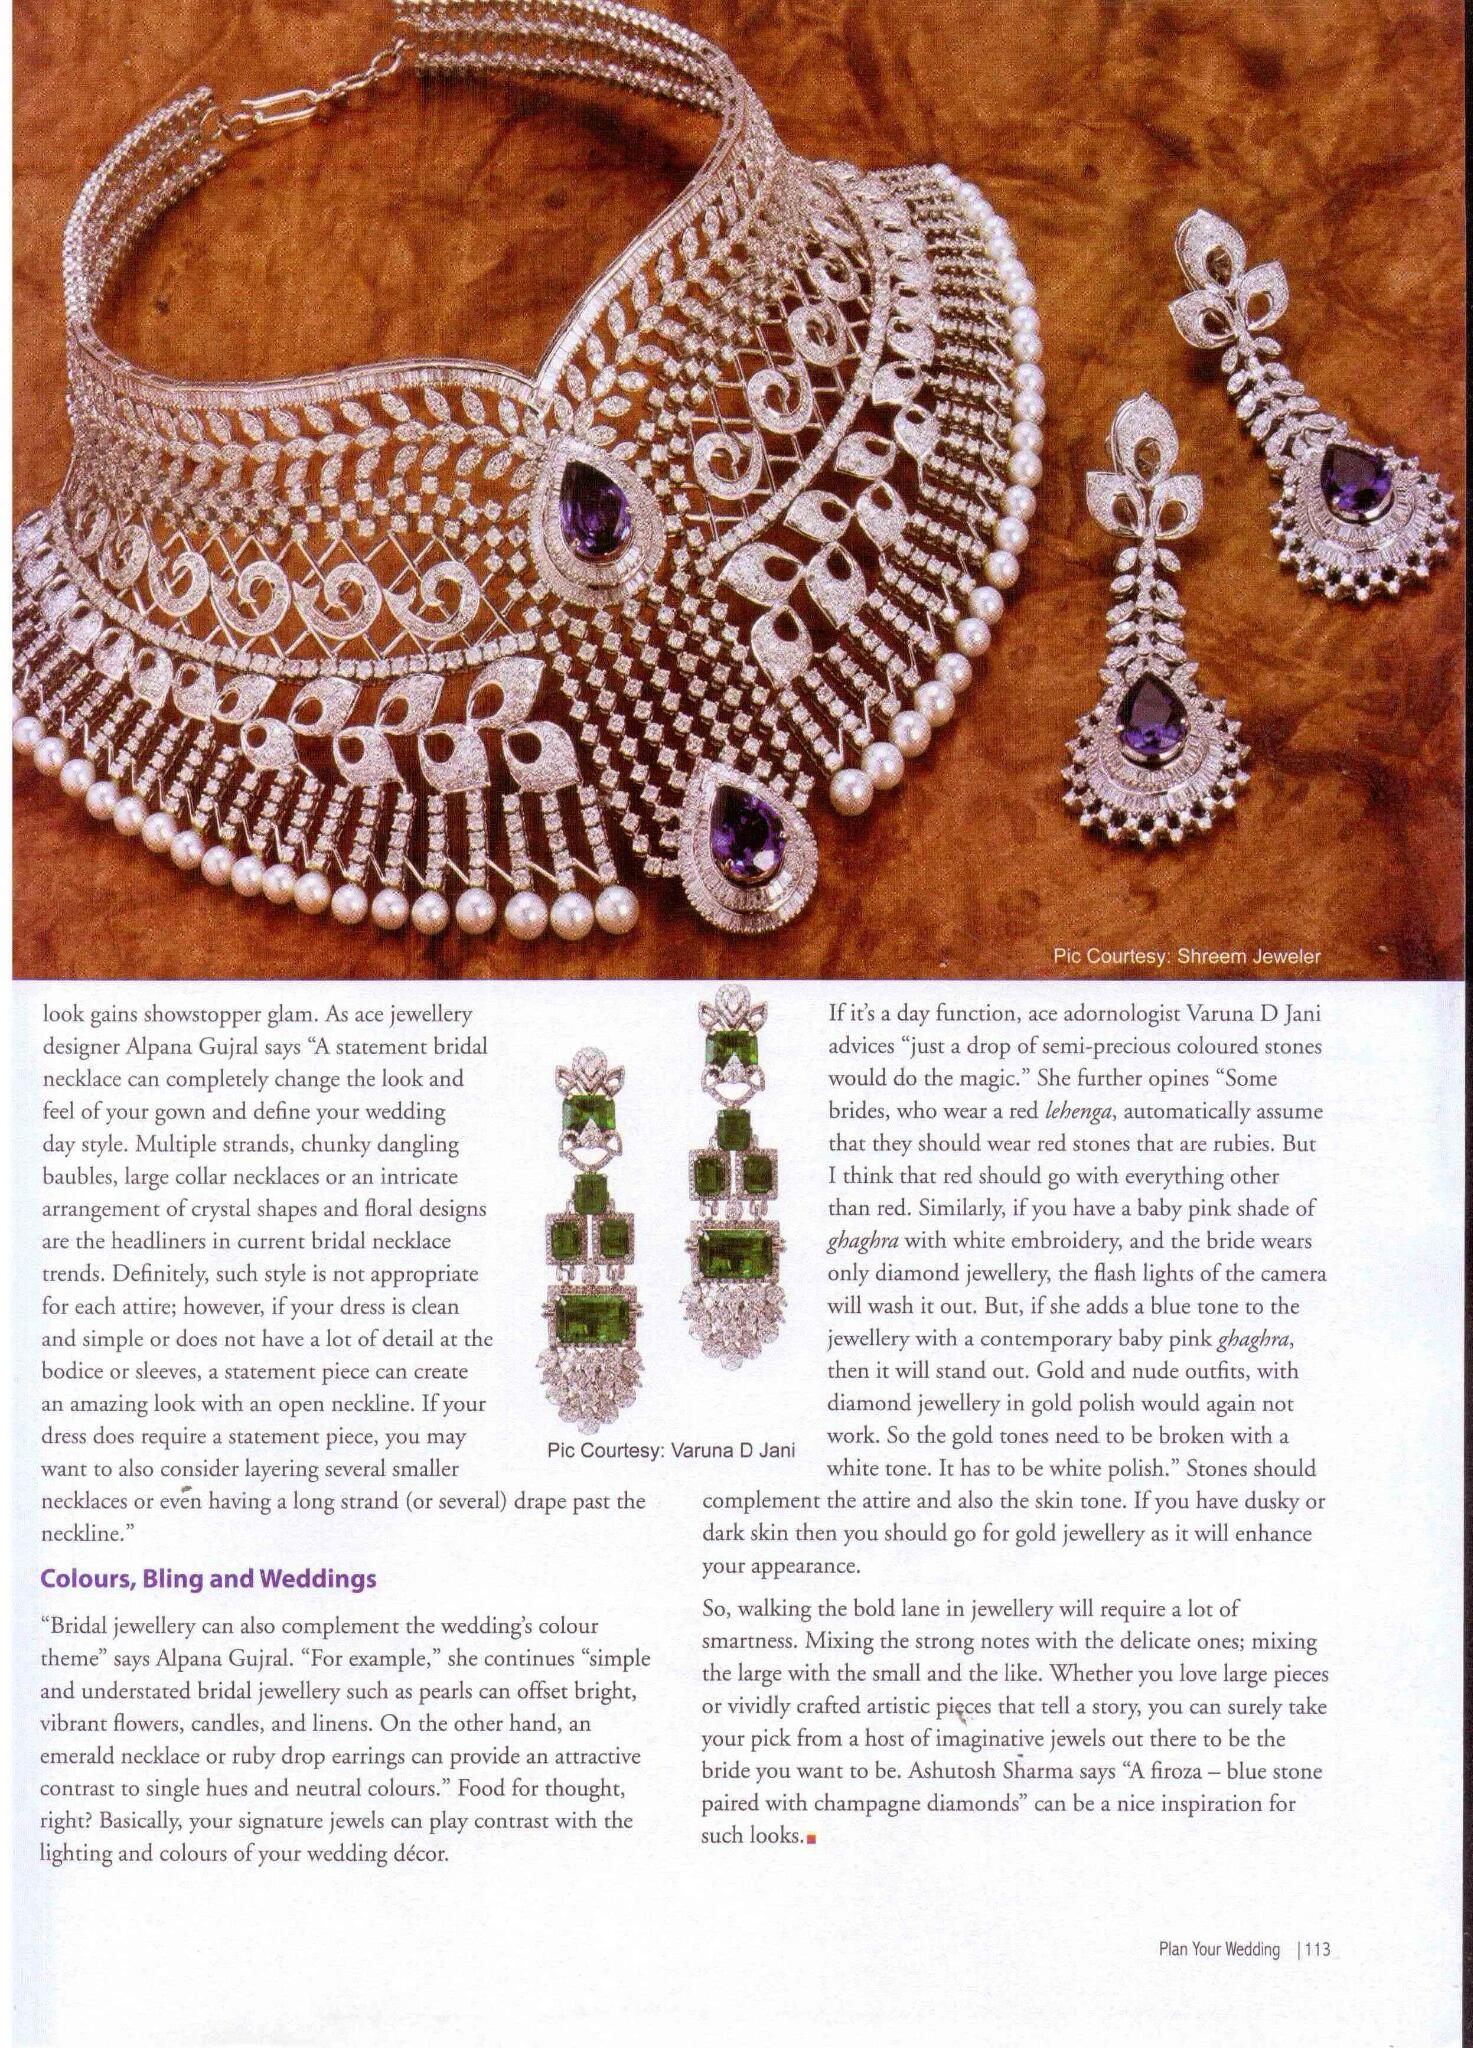 #TheBridesAdornologist as featured in @planyourwedding #Elegant #Emerald http://t.co/Qsw05d4O4g